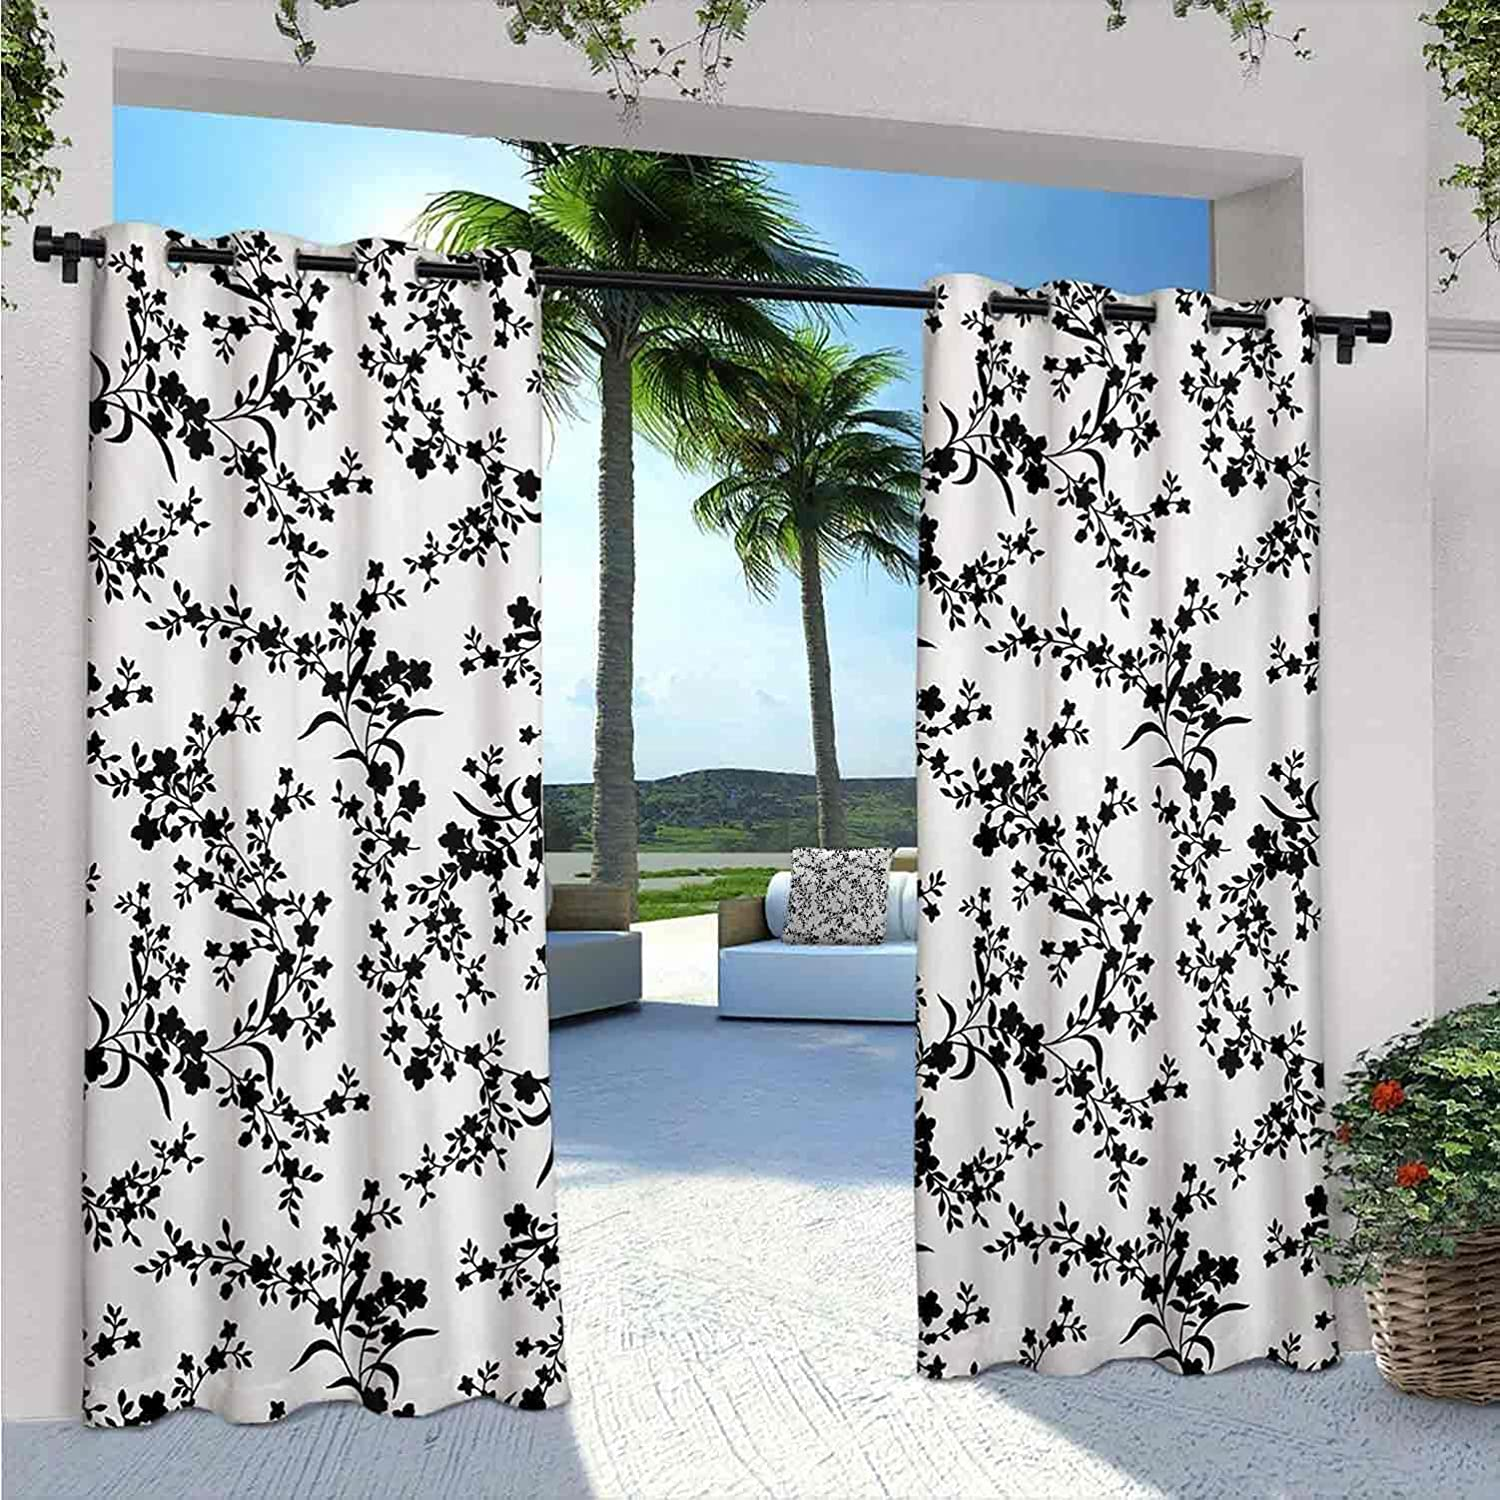 FloraWaterproof Ranking TOP4 Indoor Outdoor Max 83% OFF Curtains Sty Patio for Victorian